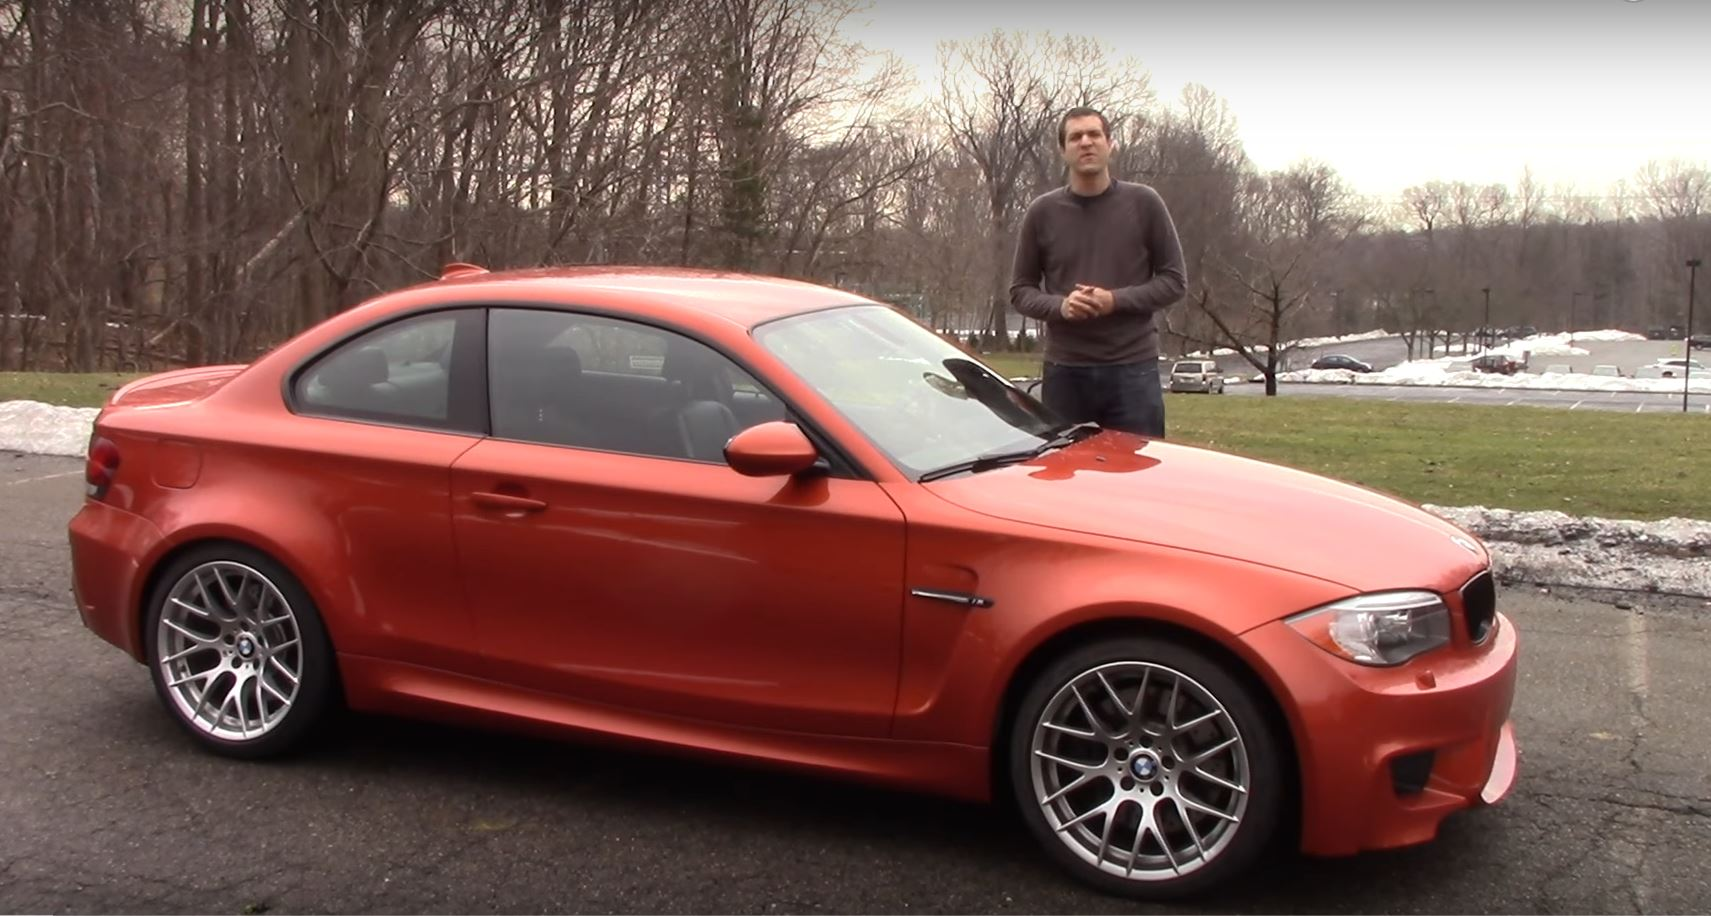 bmw 1m coupe is the best bmw ever doug demuro says autoevolution. Black Bedroom Furniture Sets. Home Design Ideas